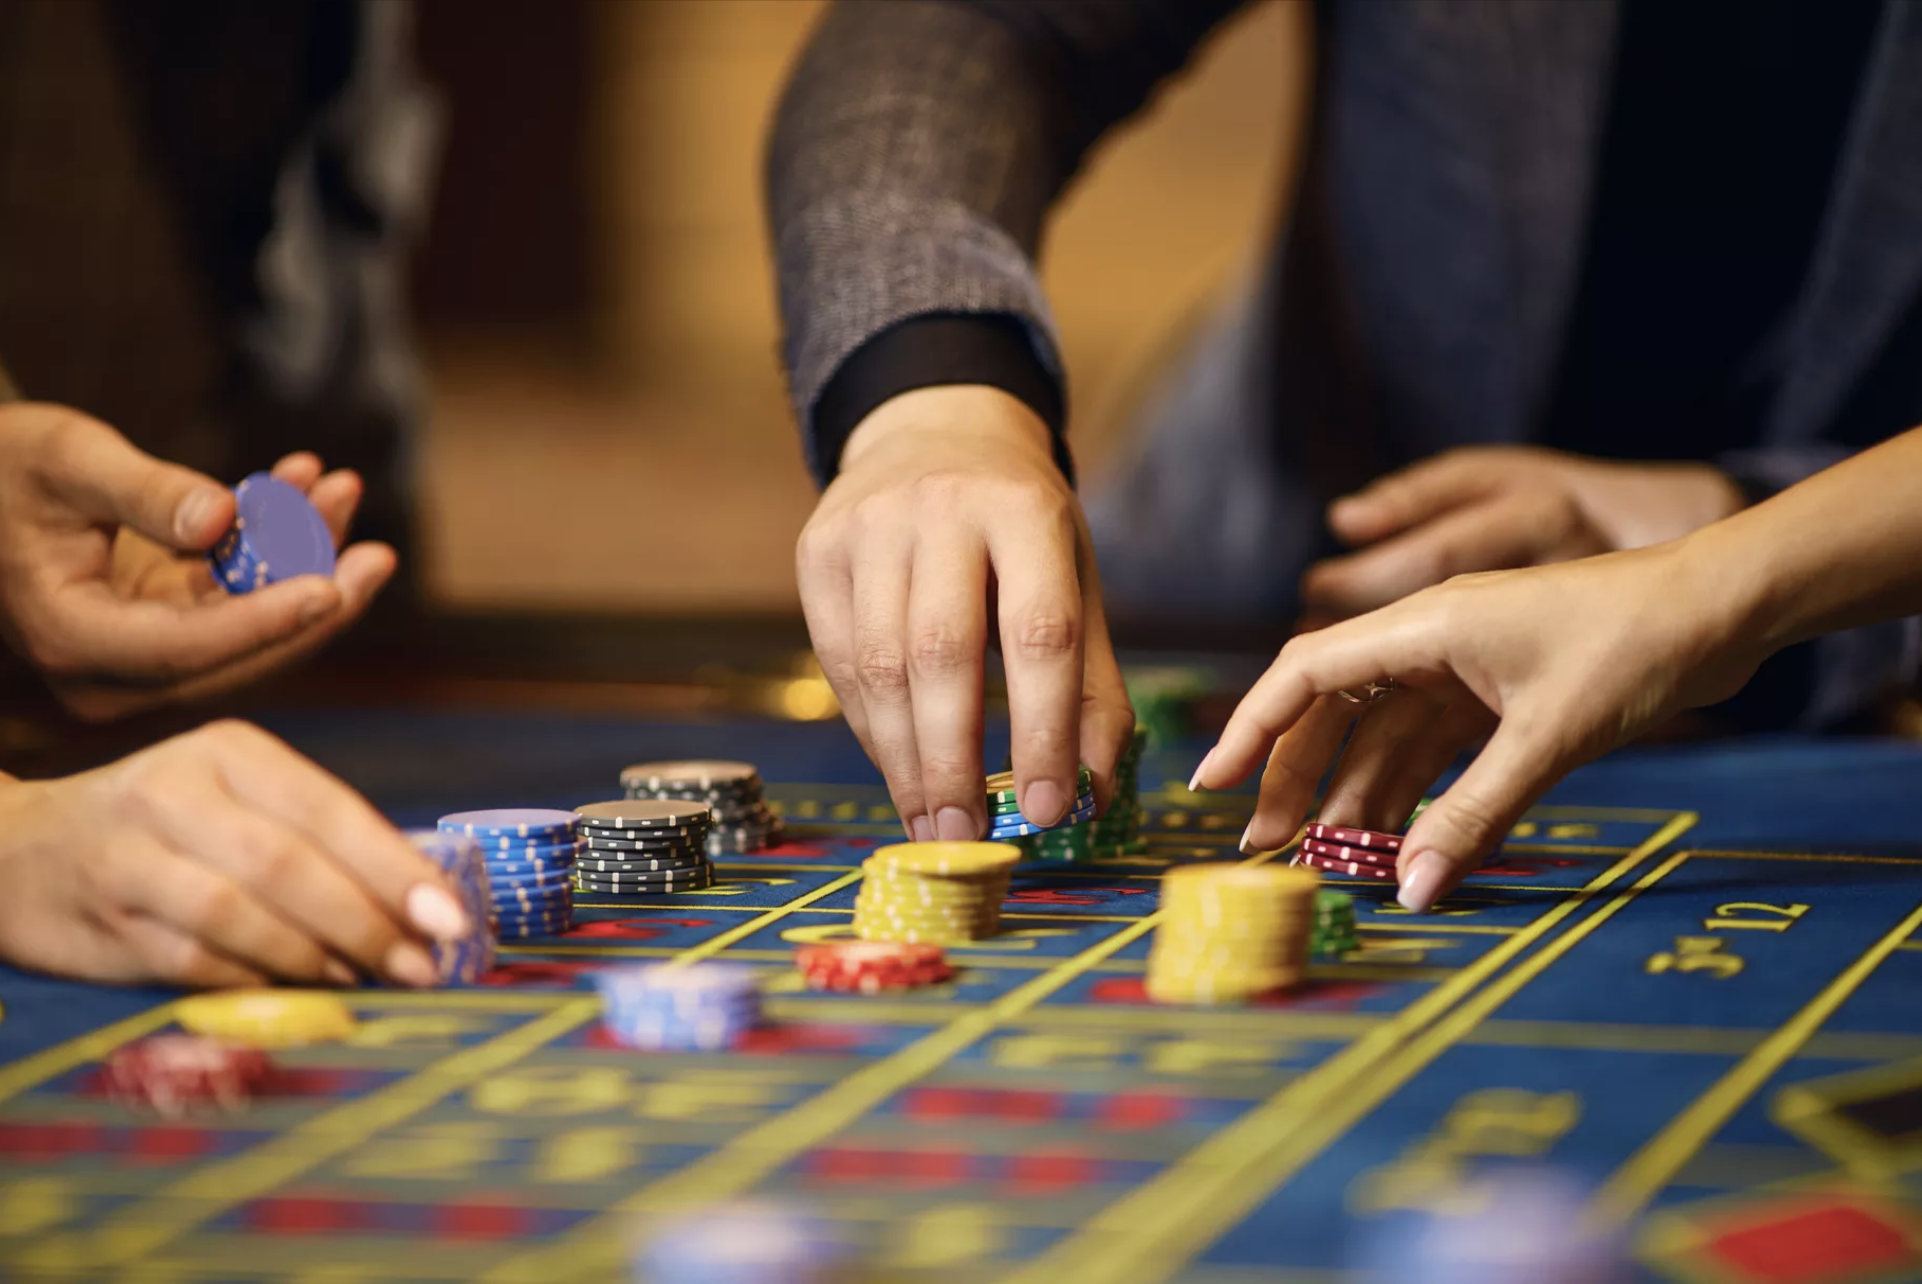 A close-up view of hands placing multicolor gambling chips on a blue gaming table.